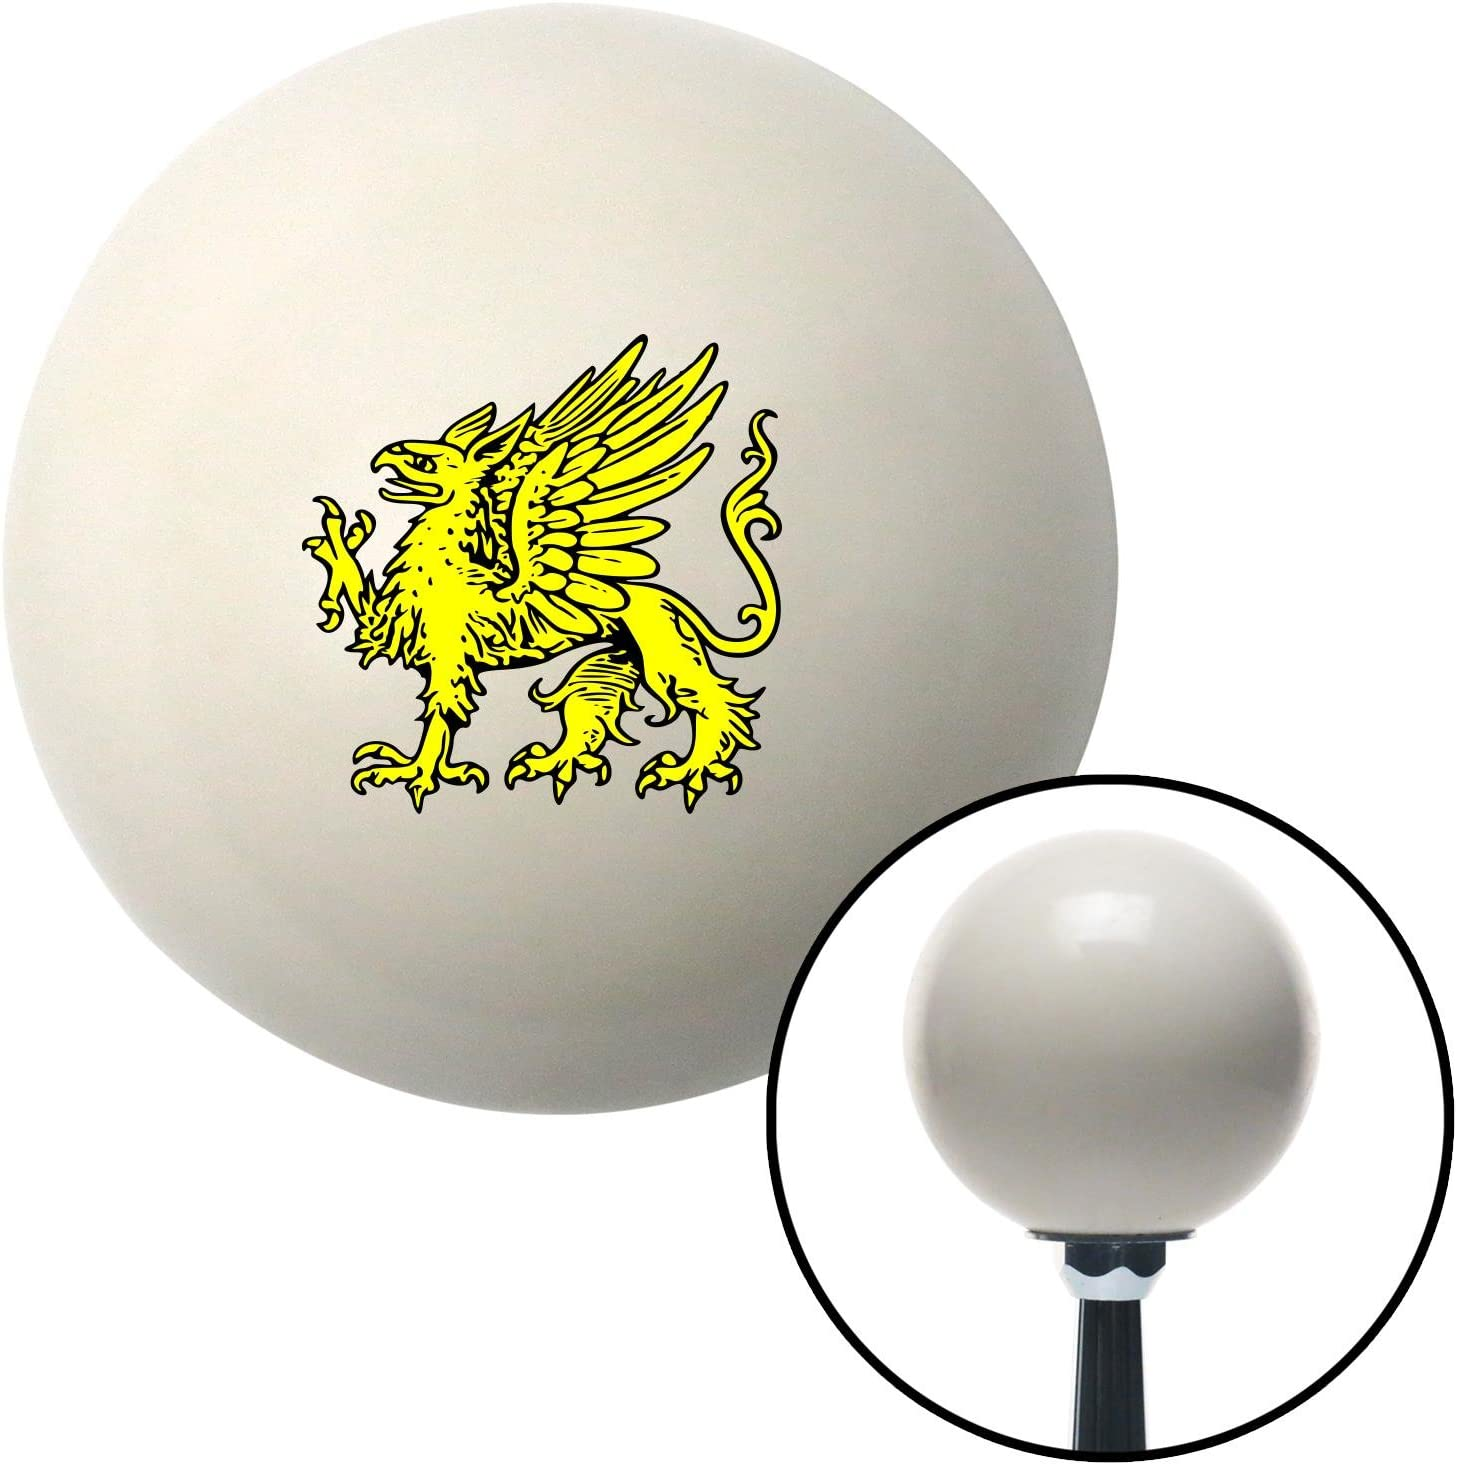 American Shifter 76107 Ivory Shift Knob with M16 x 1.5 Insert Golden Griffin